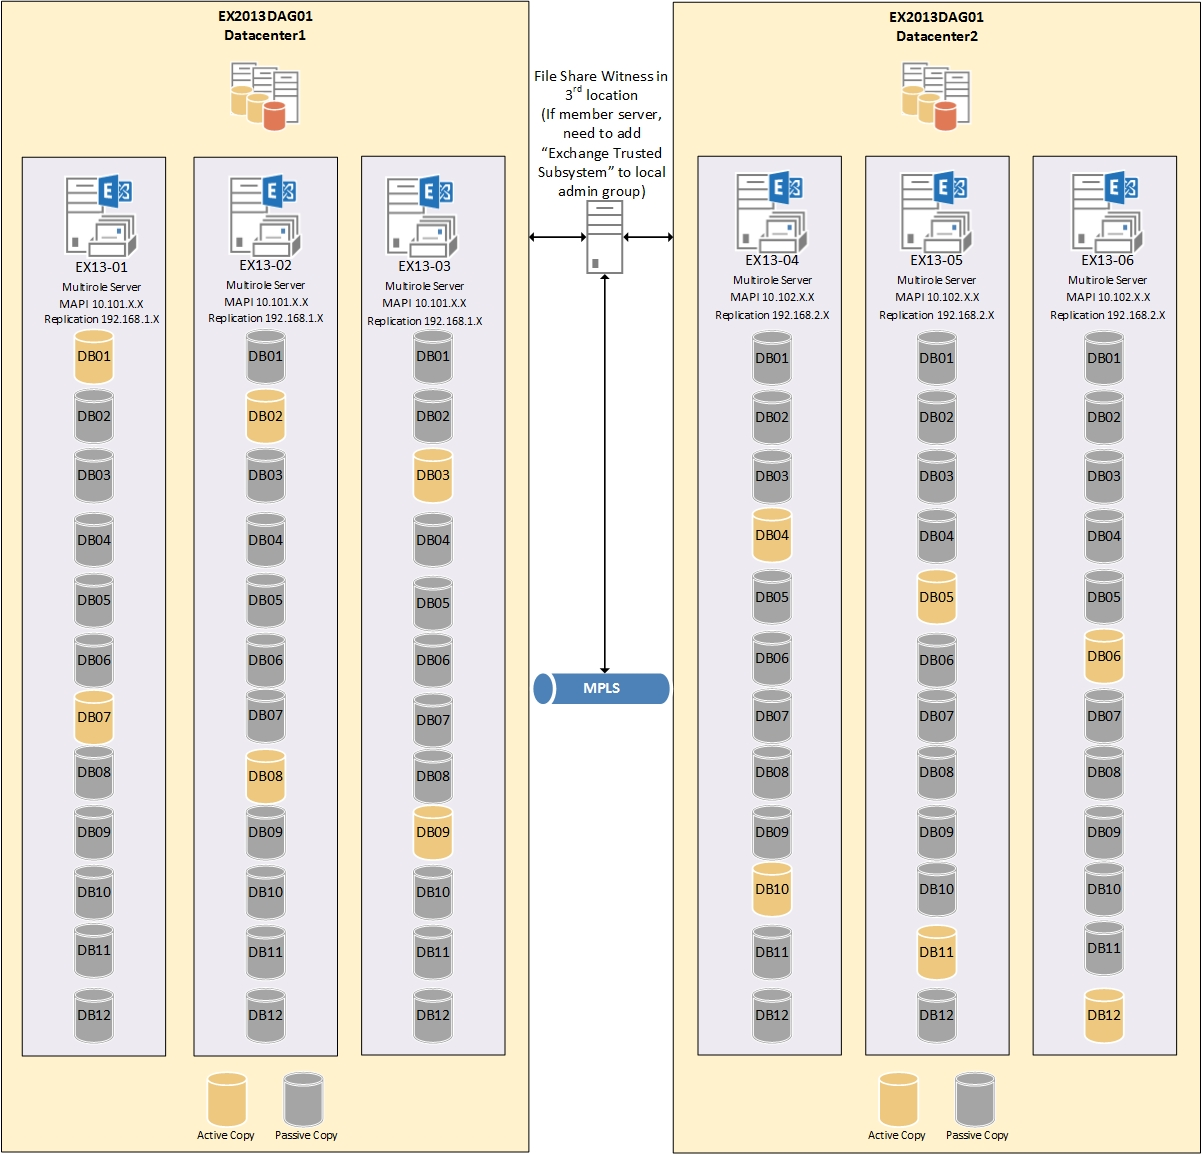 Exchange 2013 DAG Overview